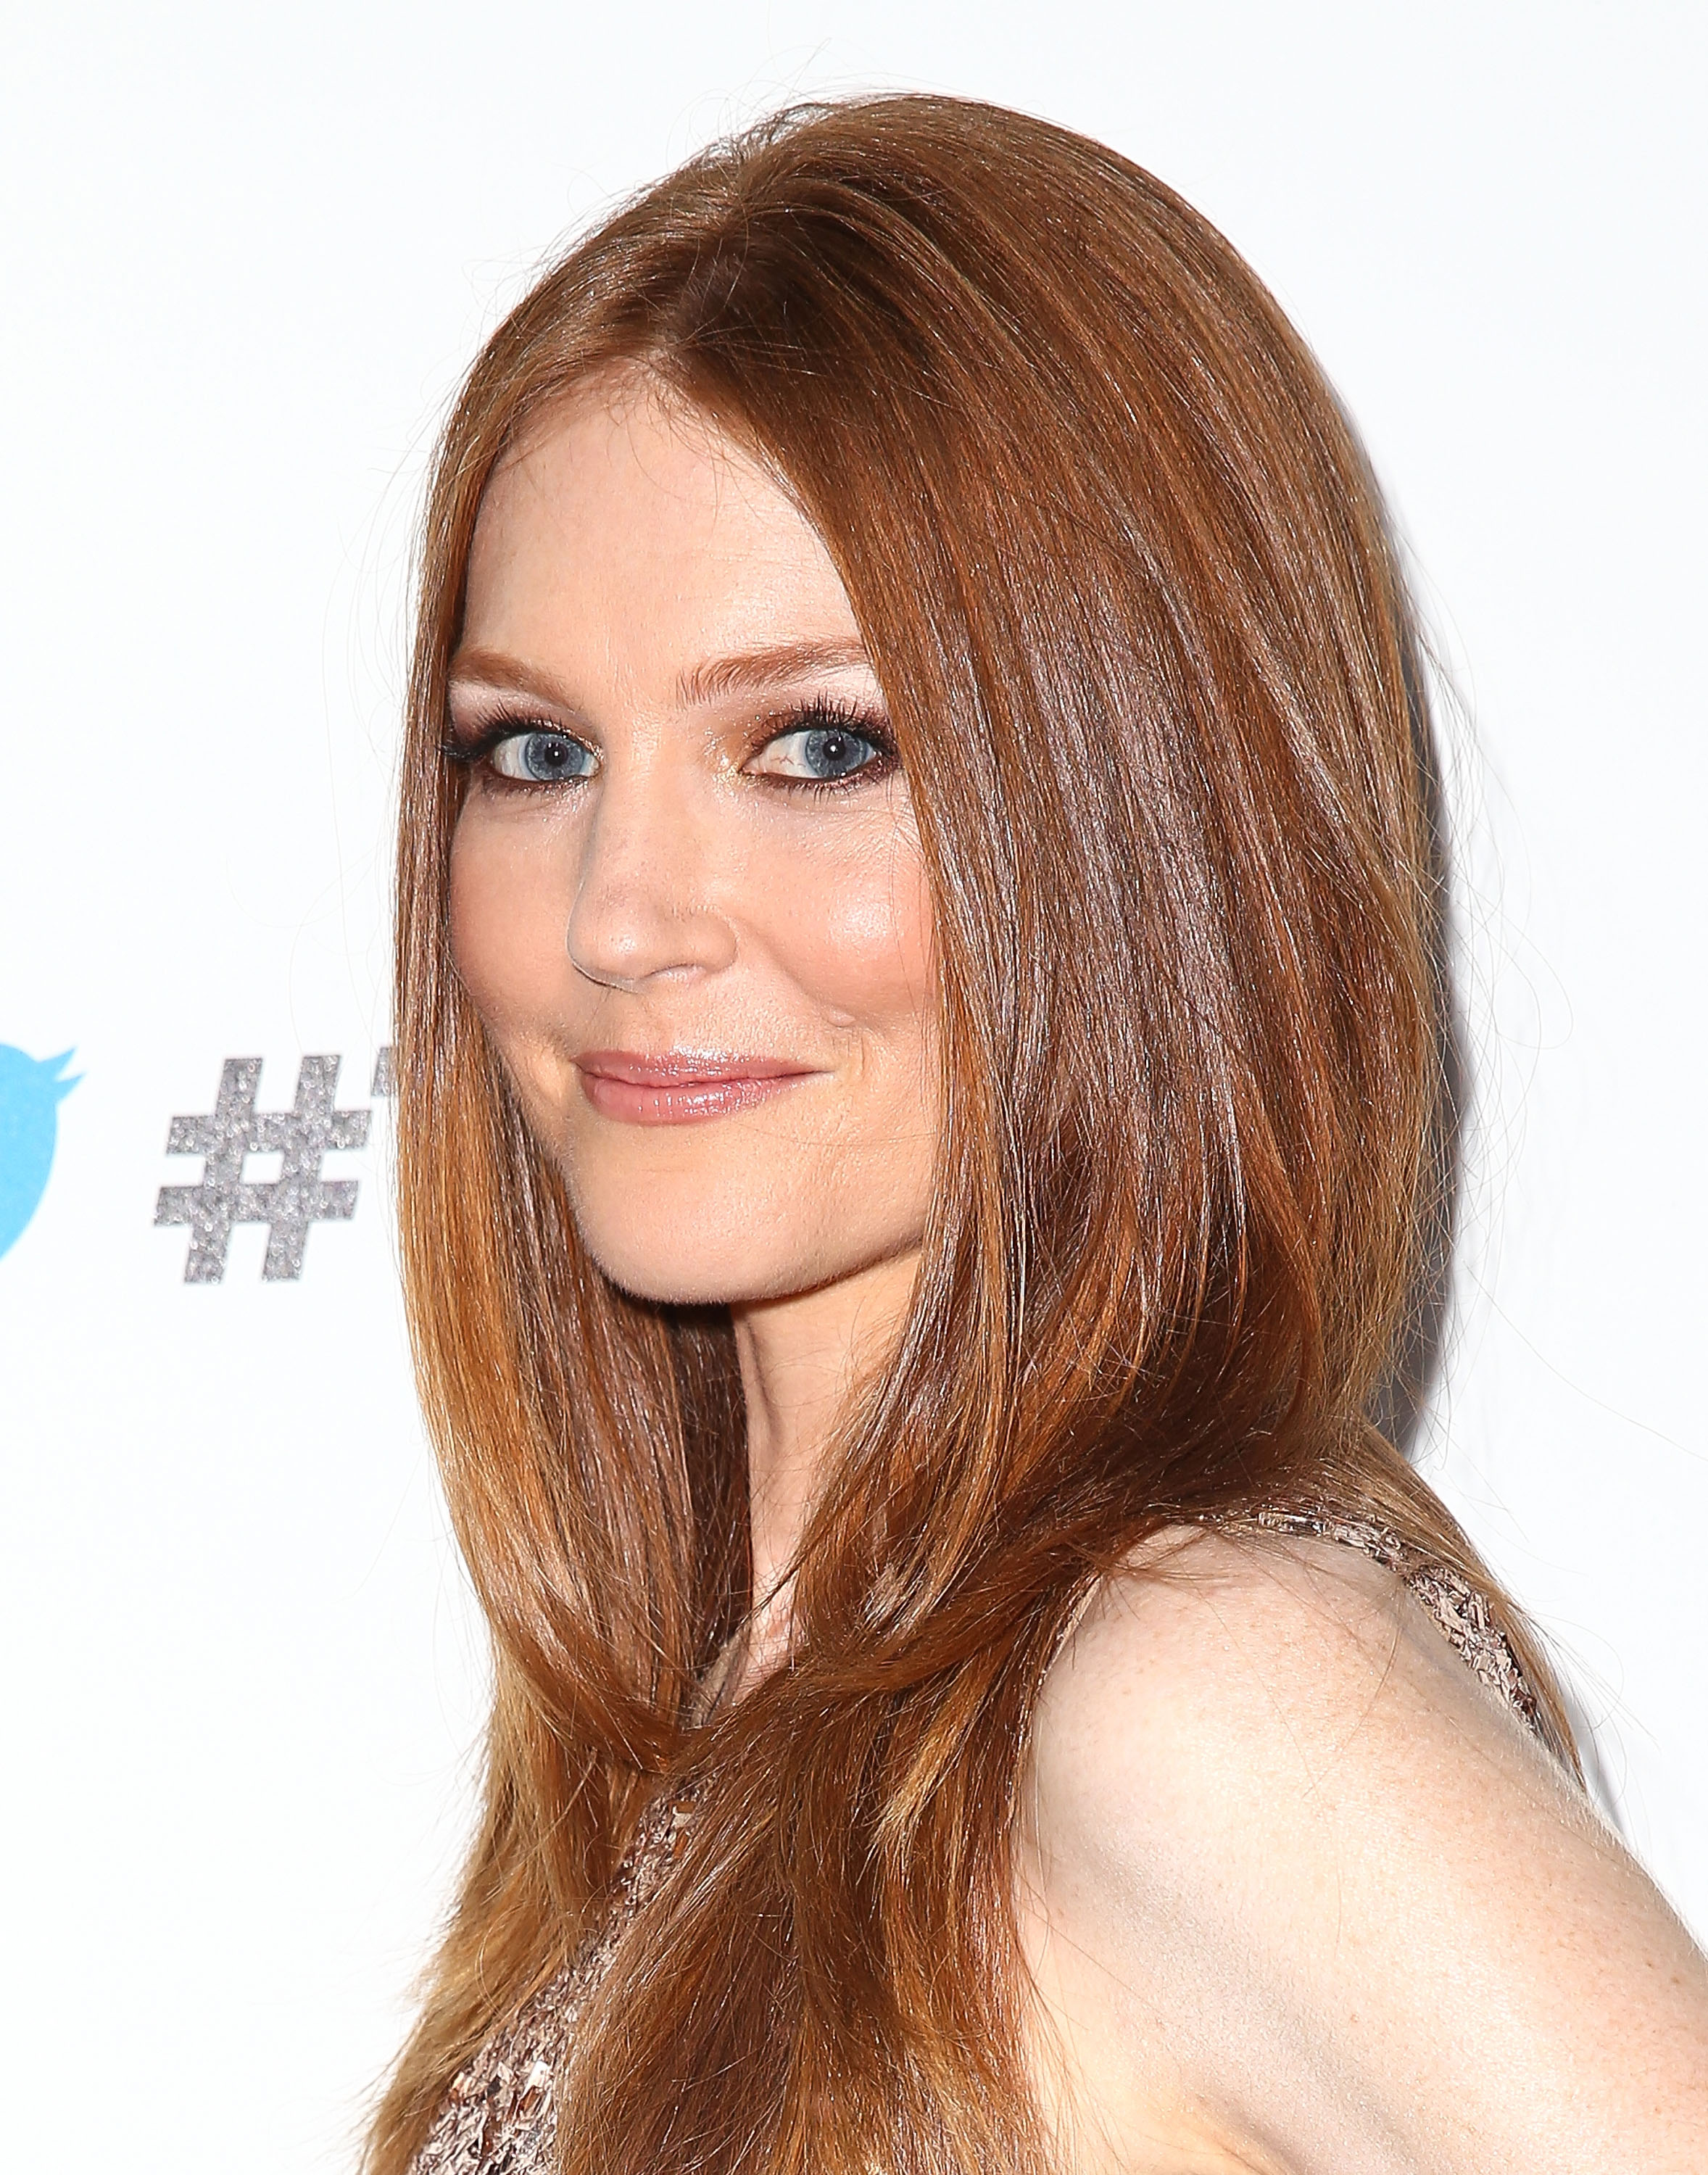 Actress Darby Stanchfield attends the TGIT Premiere event at Palihouse on September 20, 2014 in West Hollywood, California.